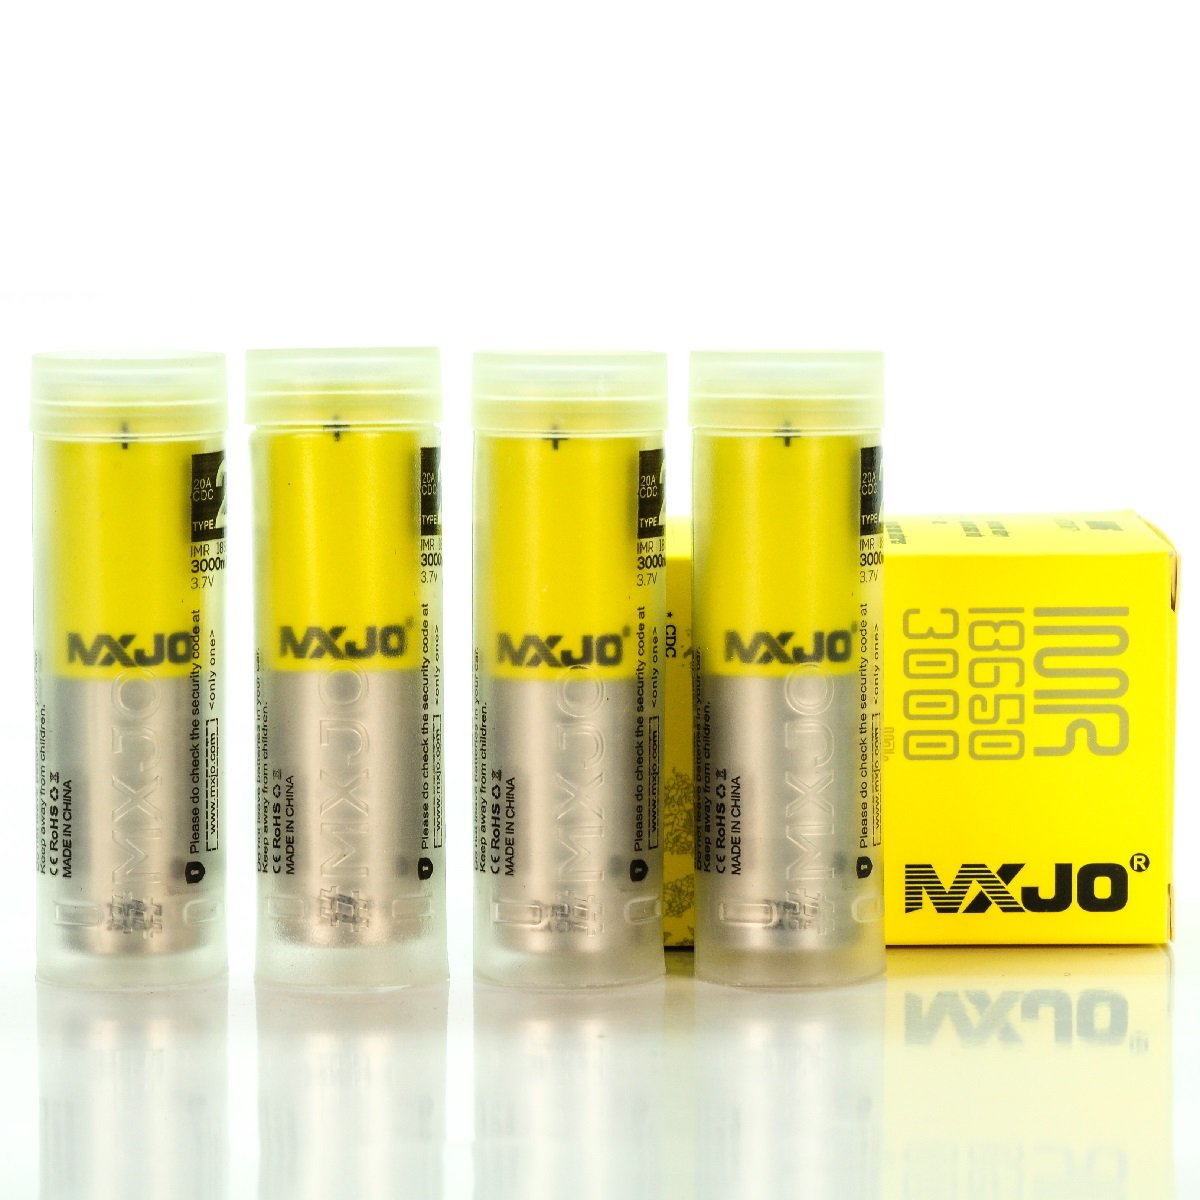 4x MXJO IMR 18650 3000MAH 35A 3.7V FT rechargeable batteries each battery in PVC CASE | authentic original flat top high drain (V Force) MXJO 18650 3000MAH